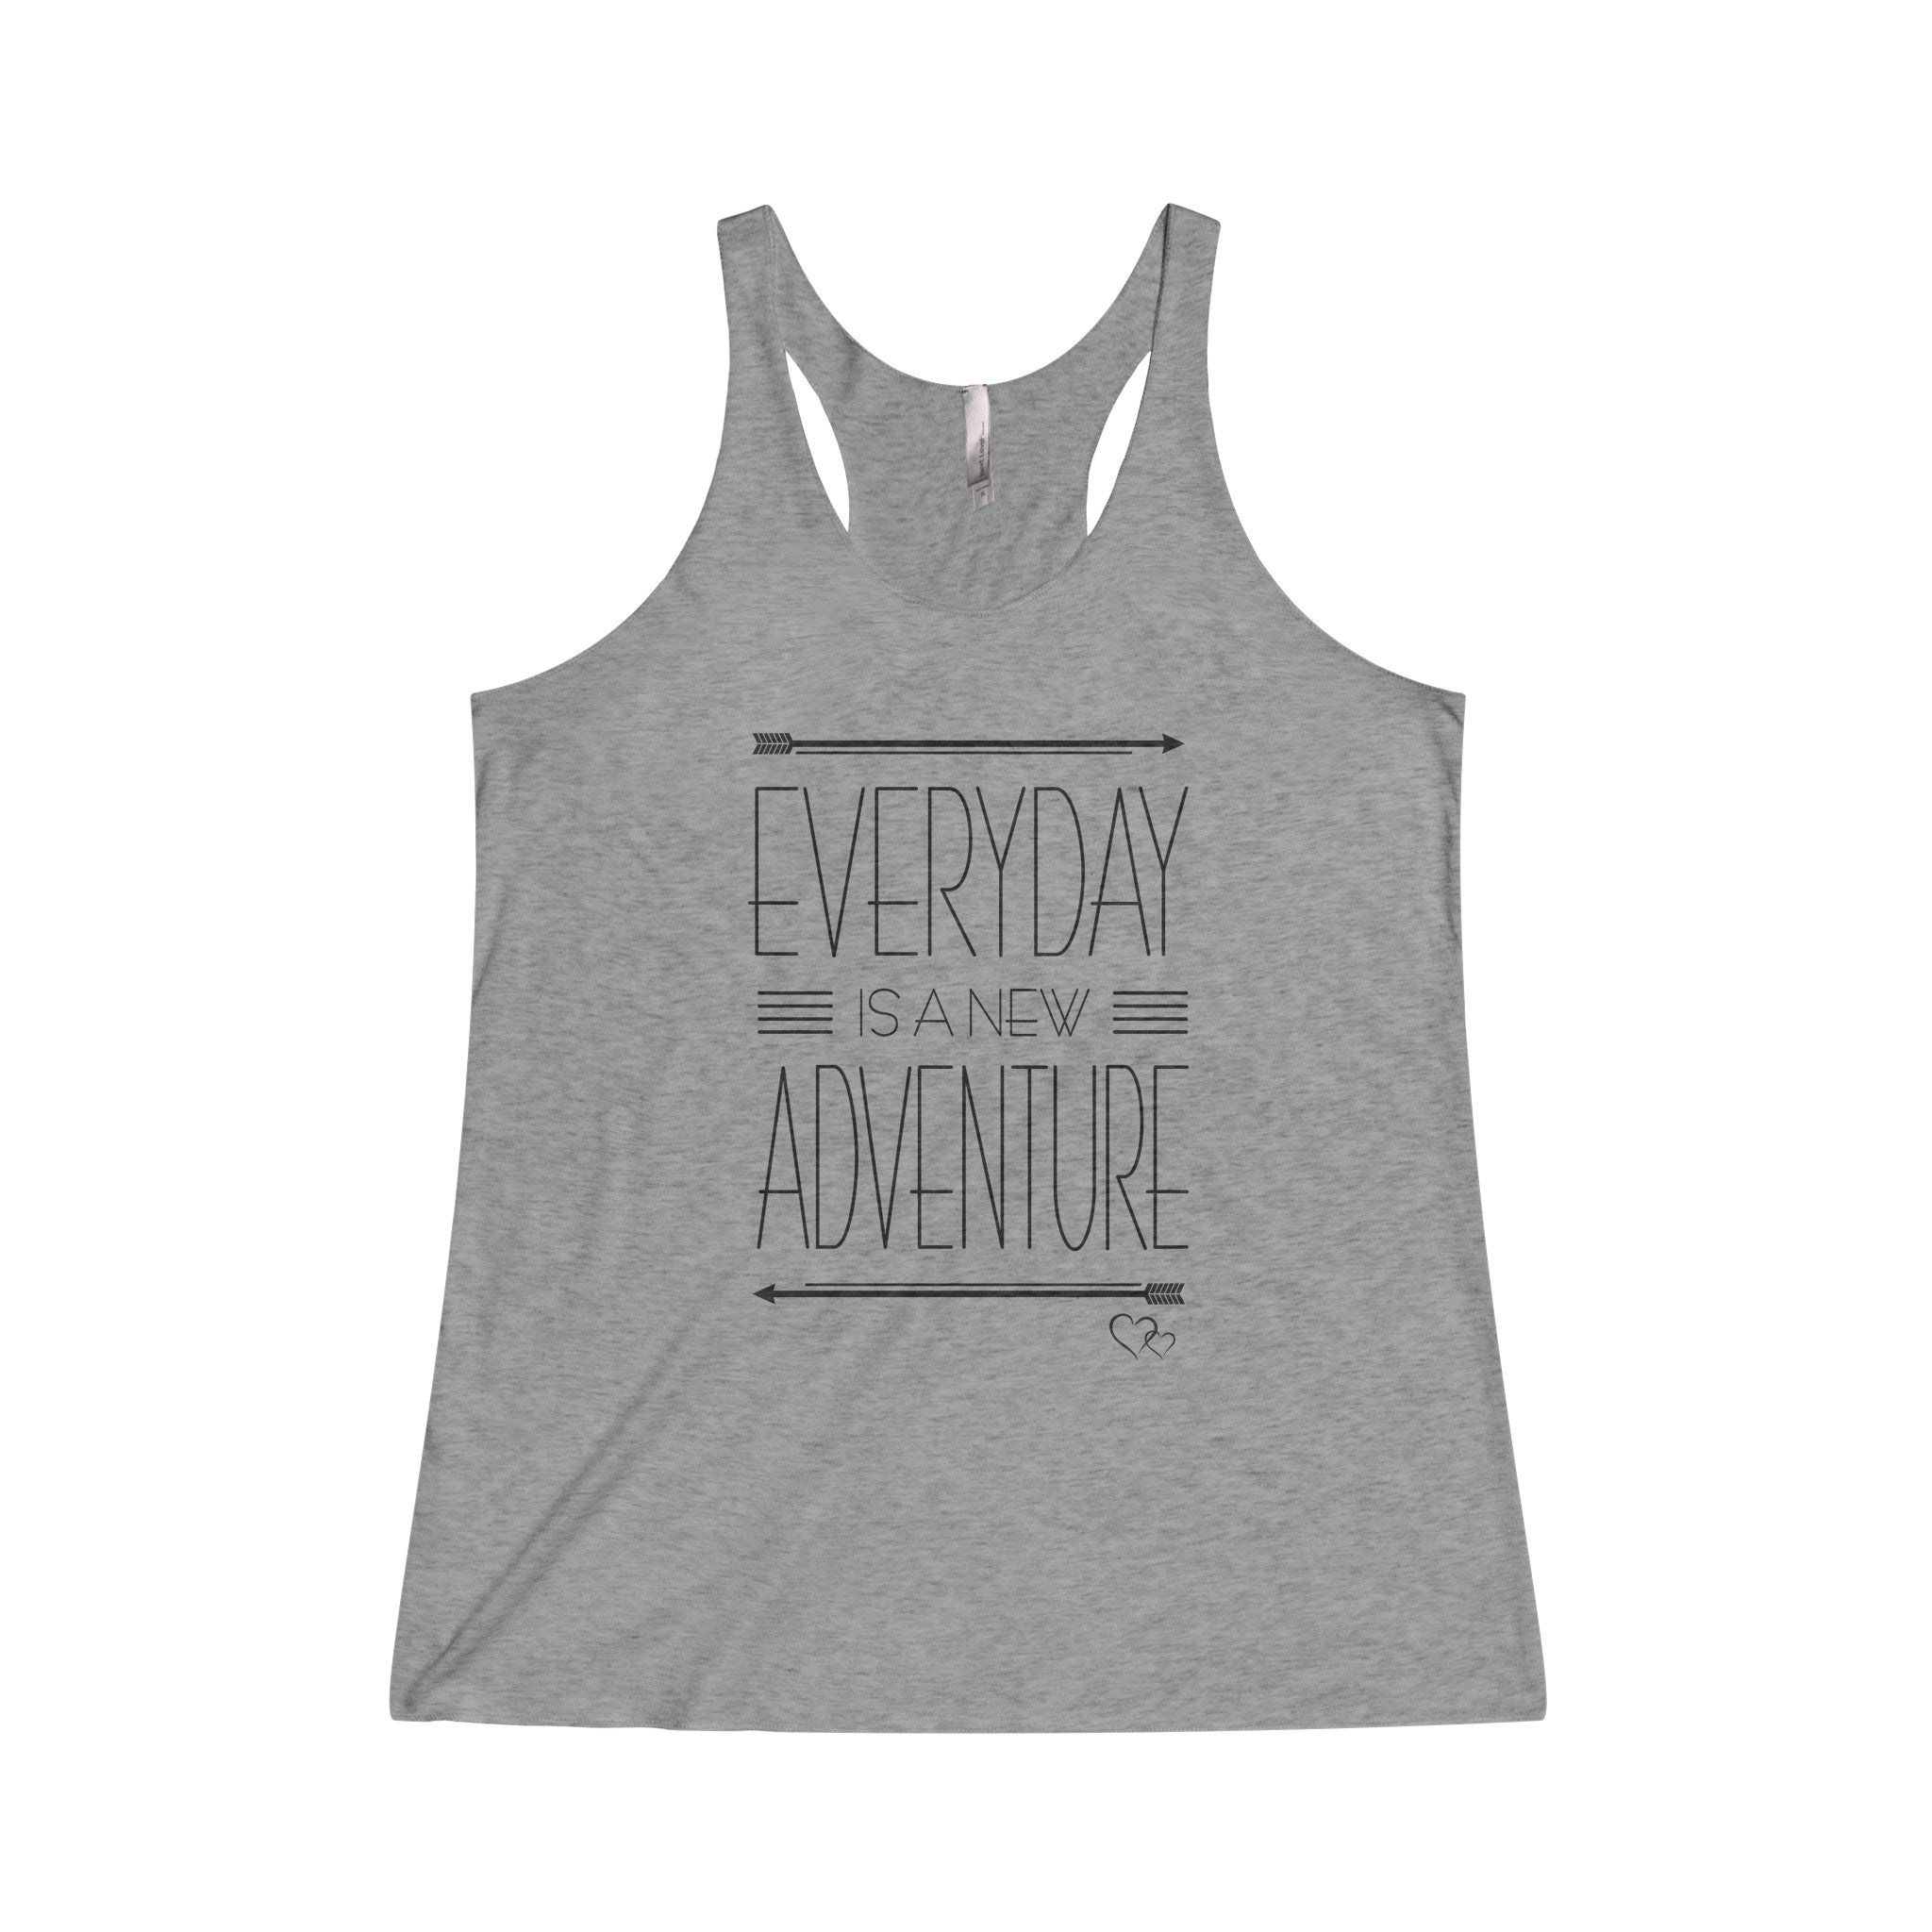 EVERYDAY ADVENTURE - Racerback Tank